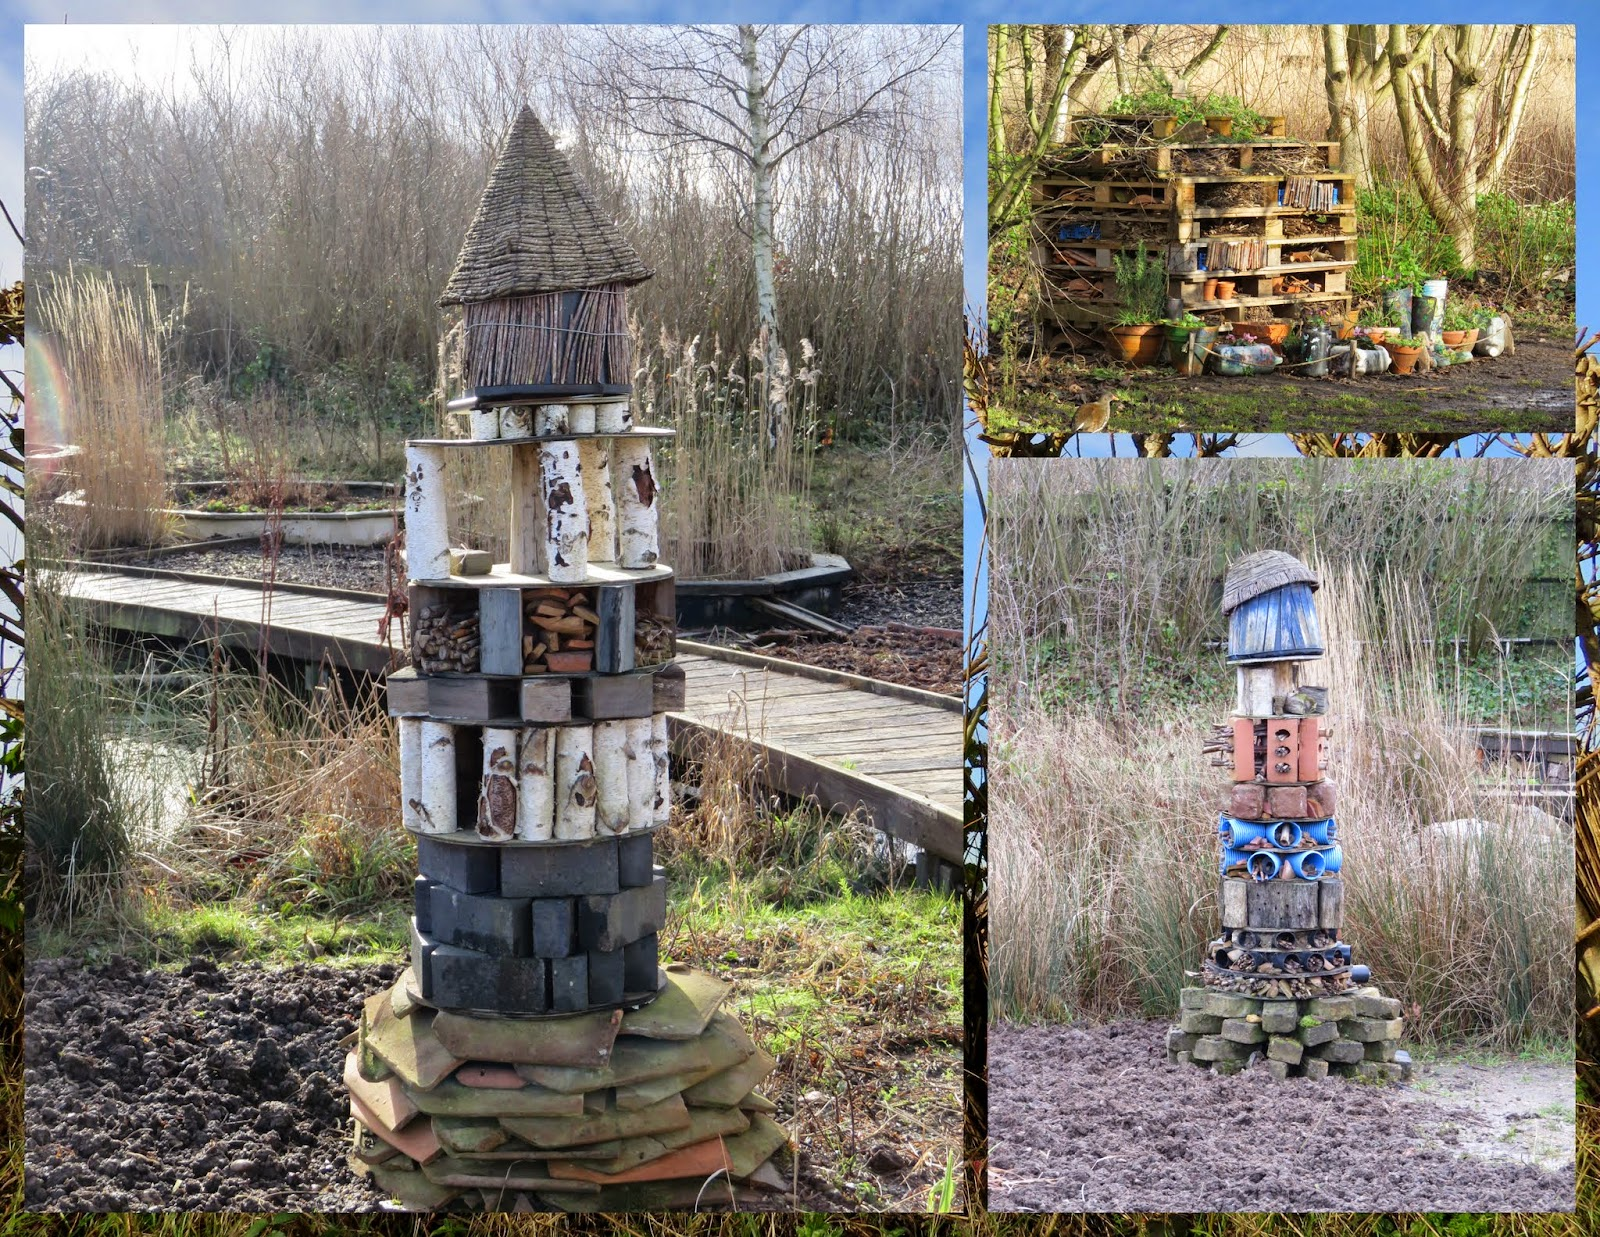 Bug hotels at the Wildfowl and Wetlands Trust London Sanctuary